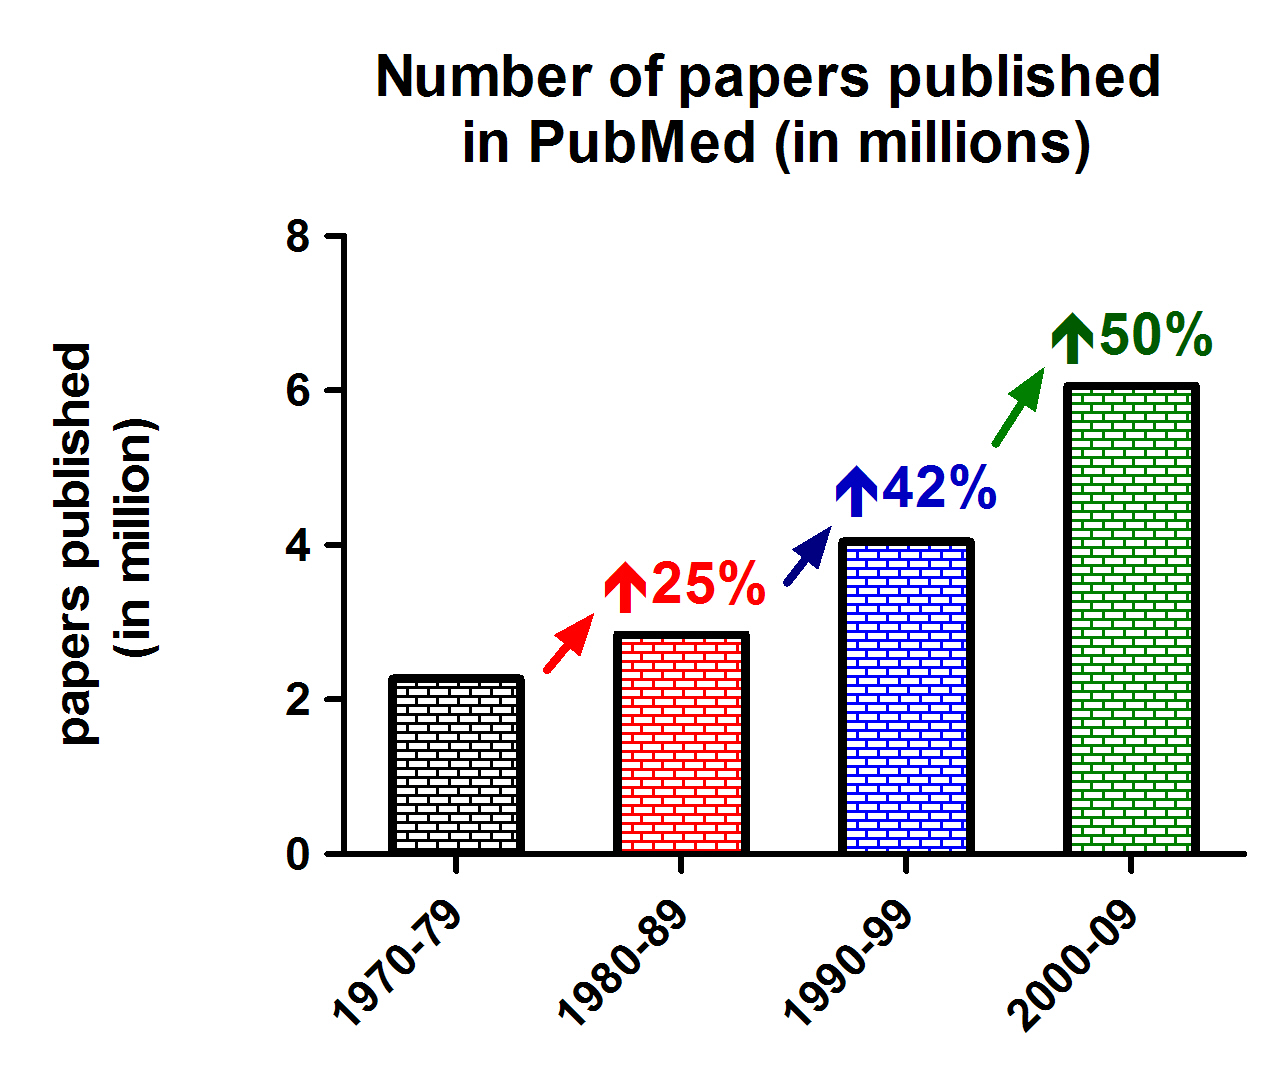 pubmedpapersoveryears